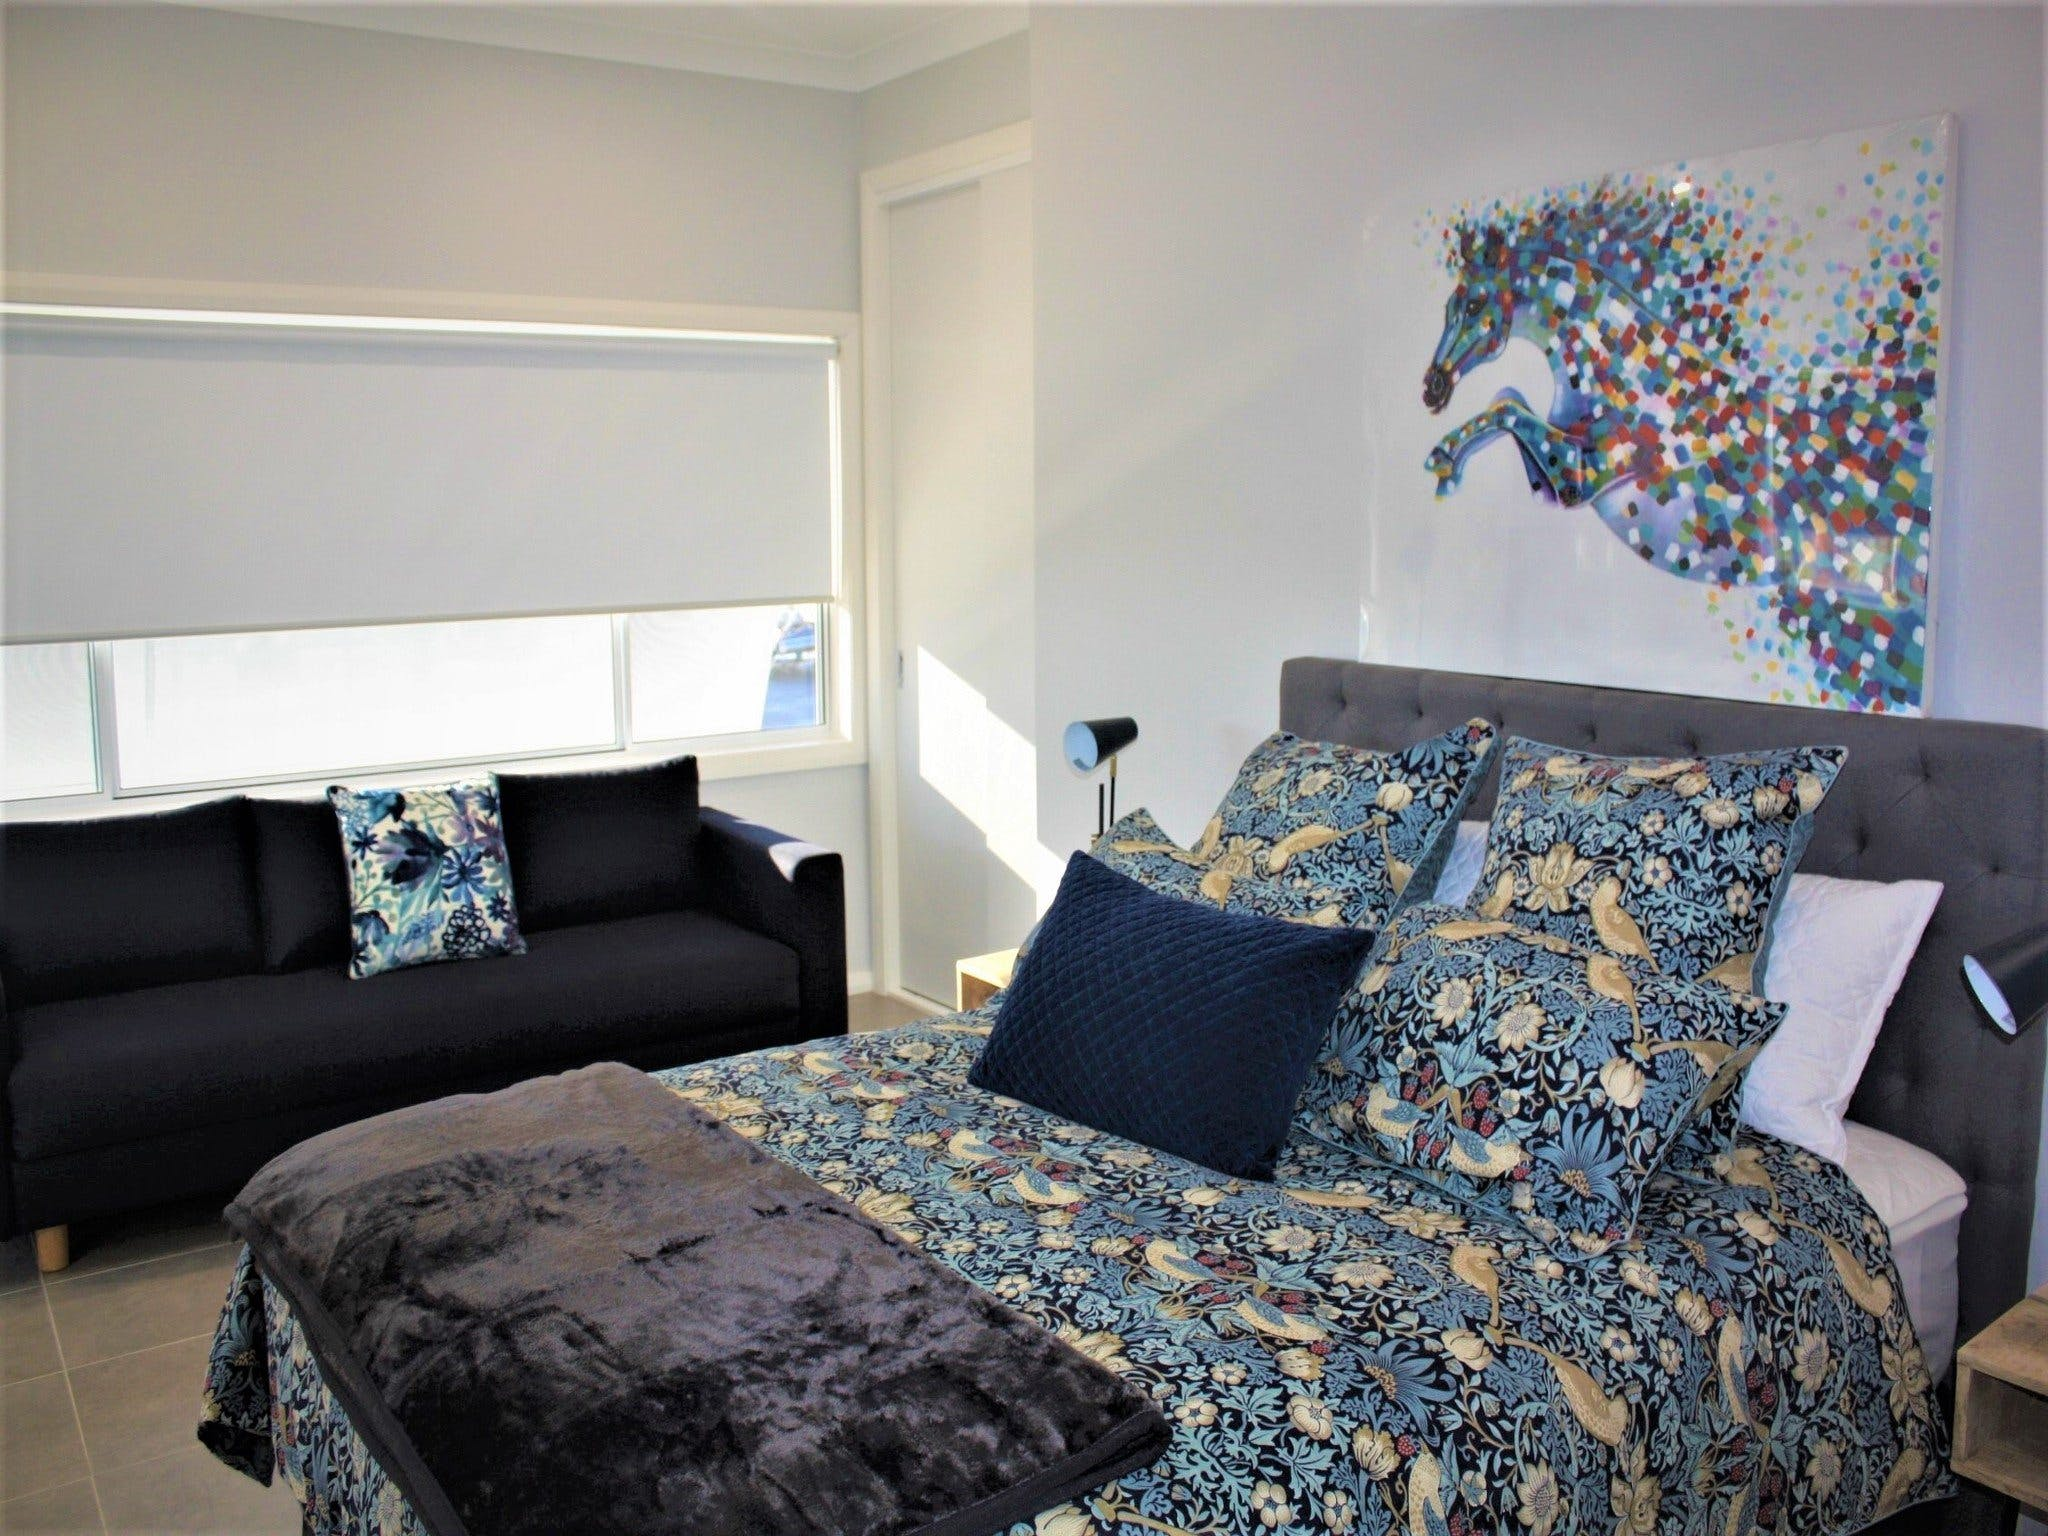 Coolah Shorts - Self Contained Apartments - Tourism Adelaide